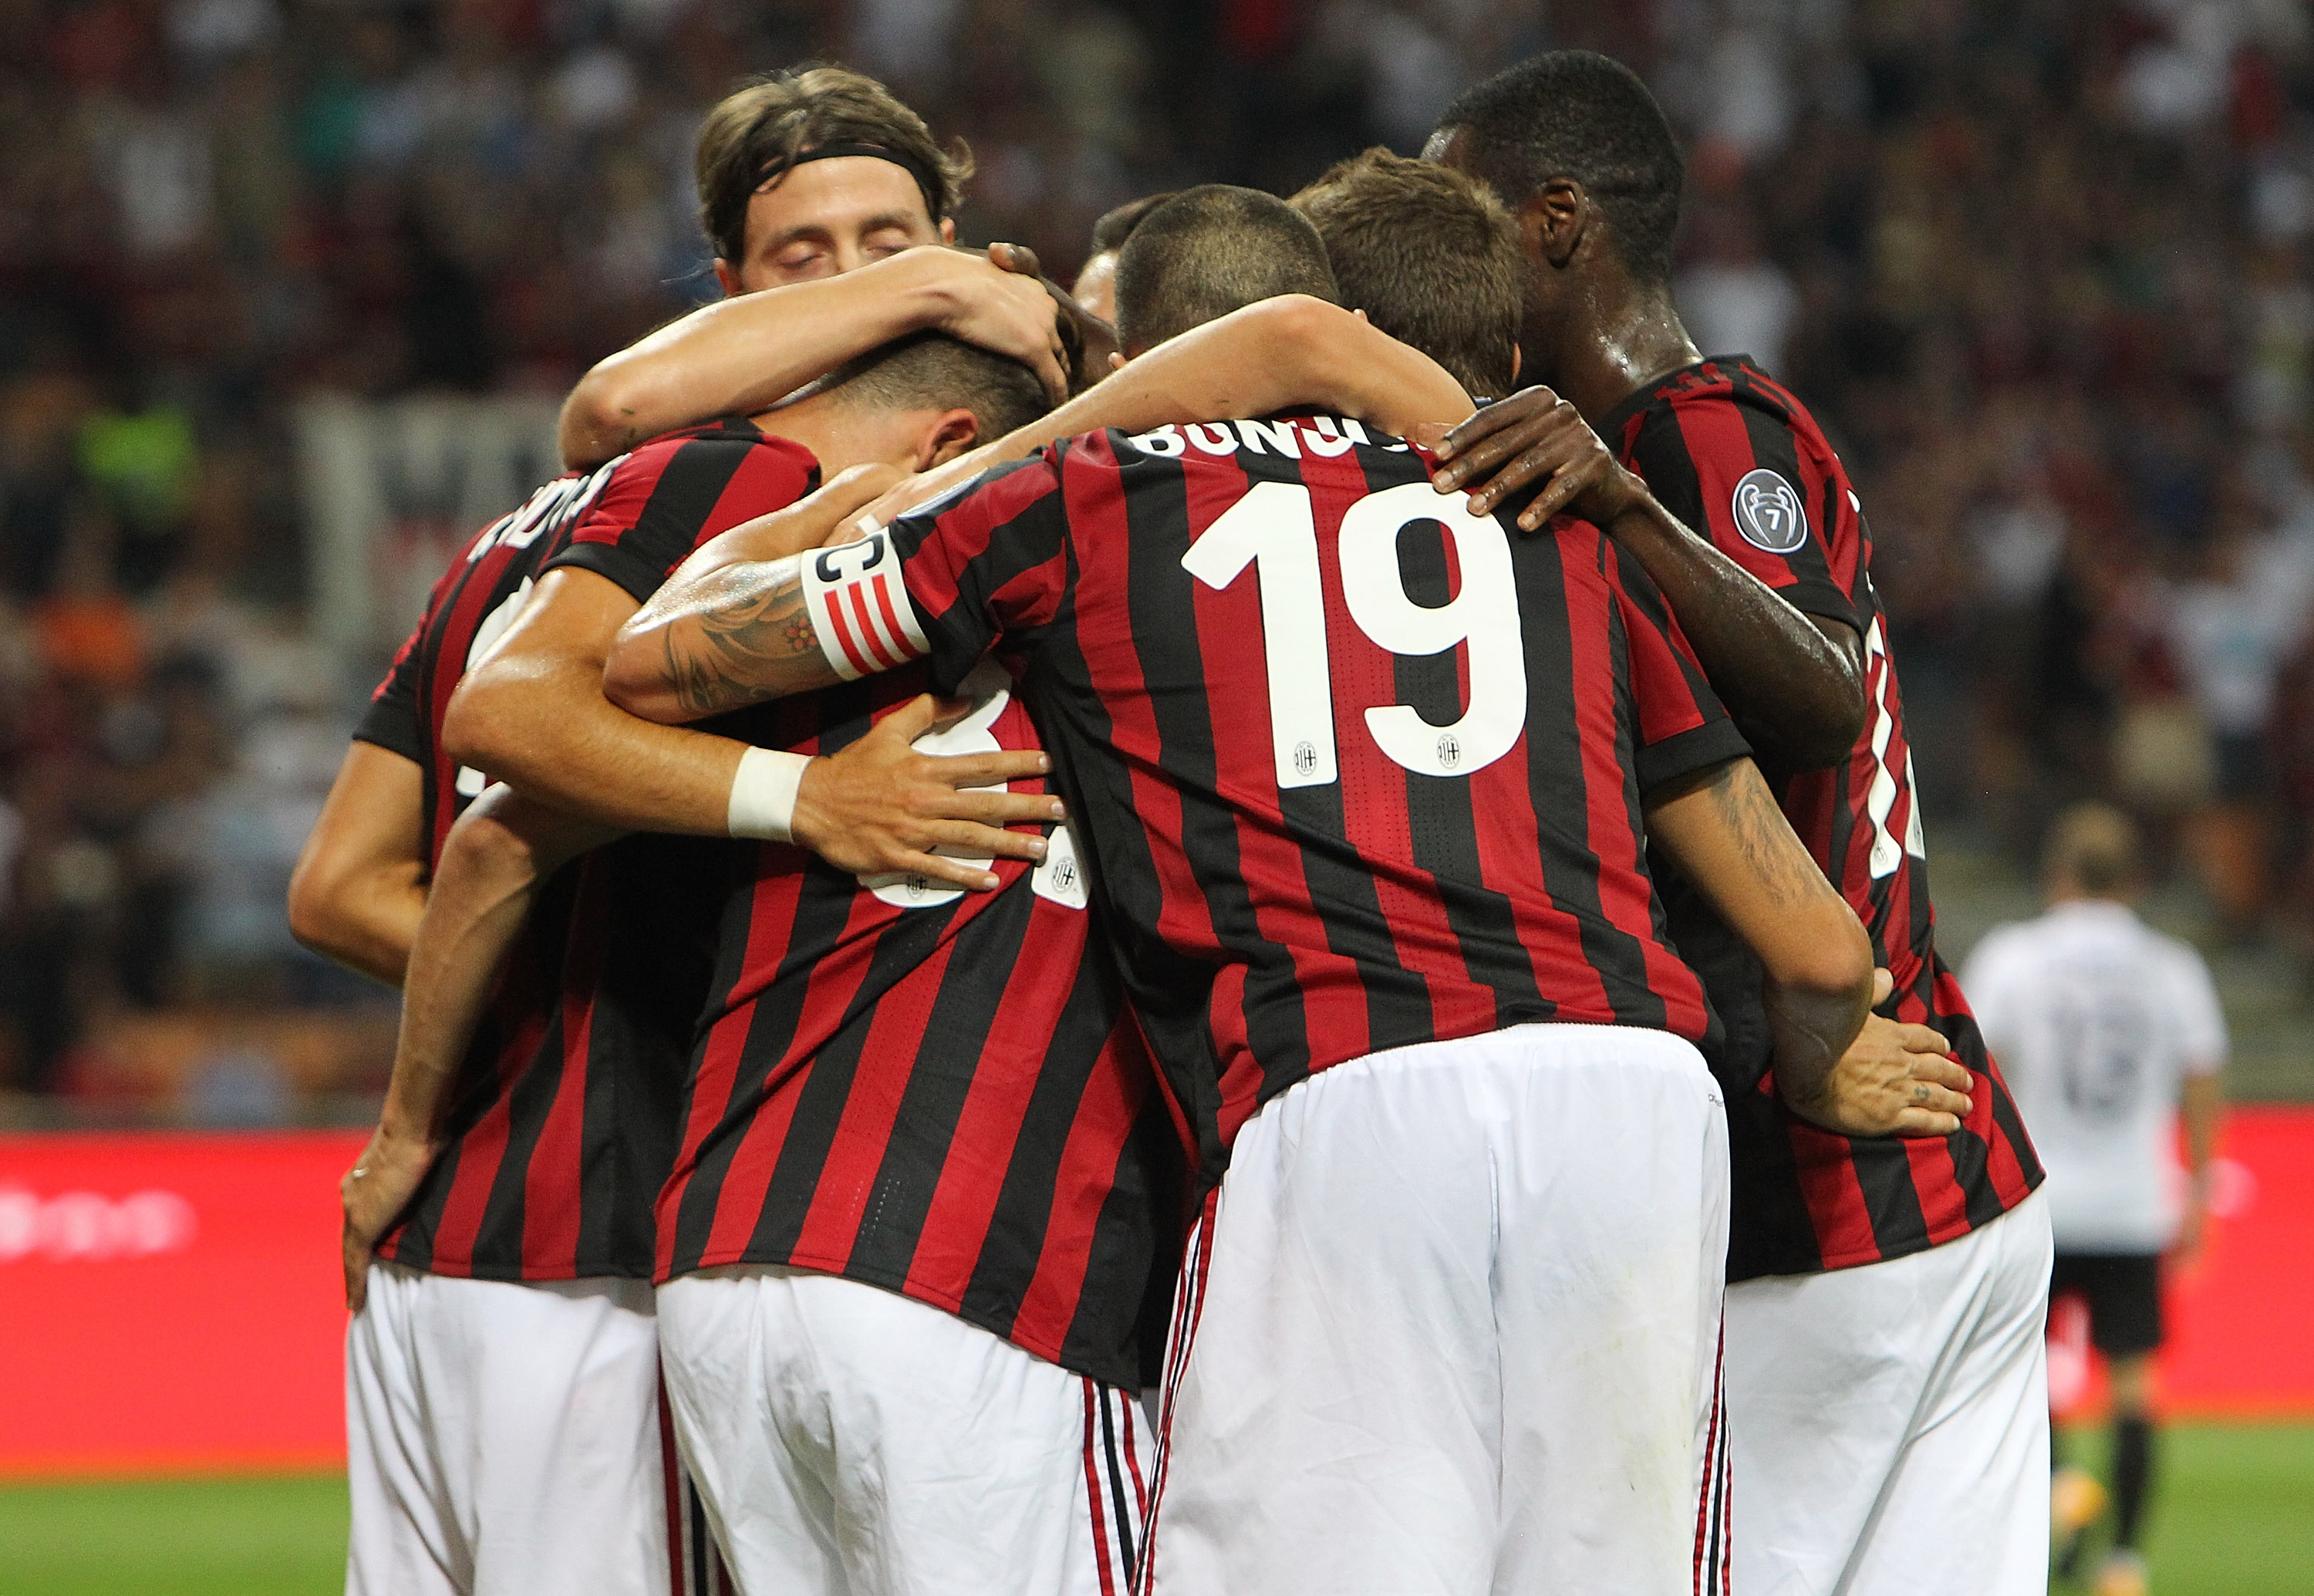 MILAN, ITALY - AUGUST 17: Andre Silva of AC Milan celebrates with his team-mates after scoring the opening goal during the UEFA Europa League Qualifying Play-Offs round first leg match between AC Milan and KF Shkendija 79 at Stadio Giuseppe Meazza on August 17, 2017 in Milan, Italy. (Photo by Marco Luzzani/Getty Images)